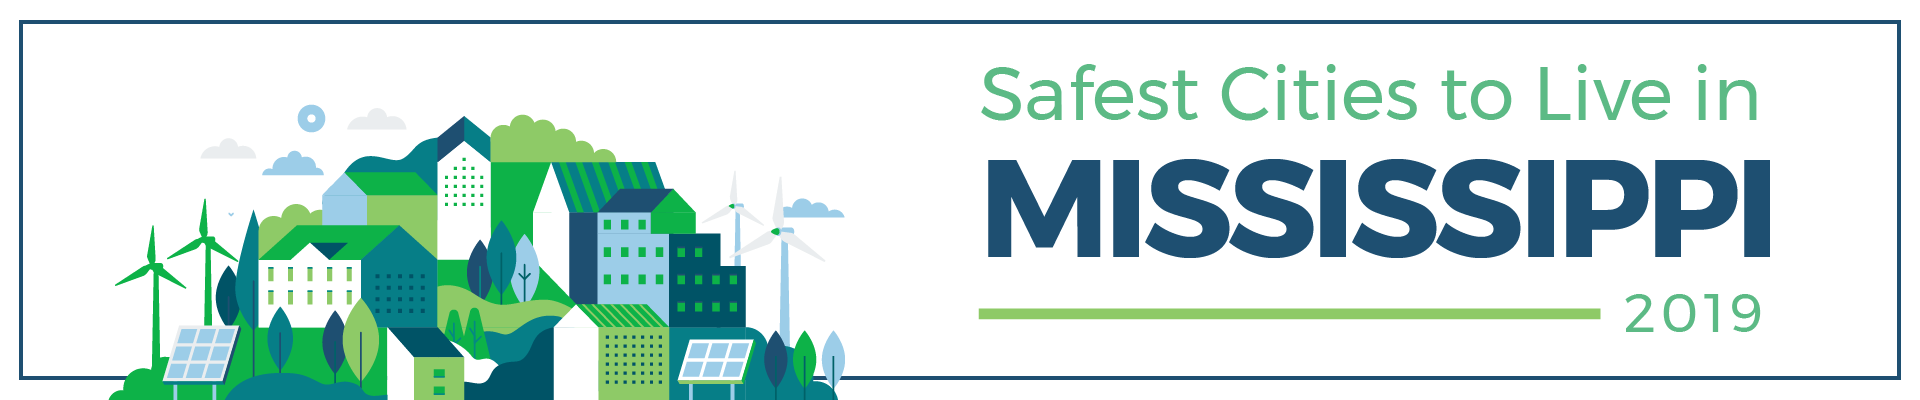 header - safest_cities_mississippi_2019